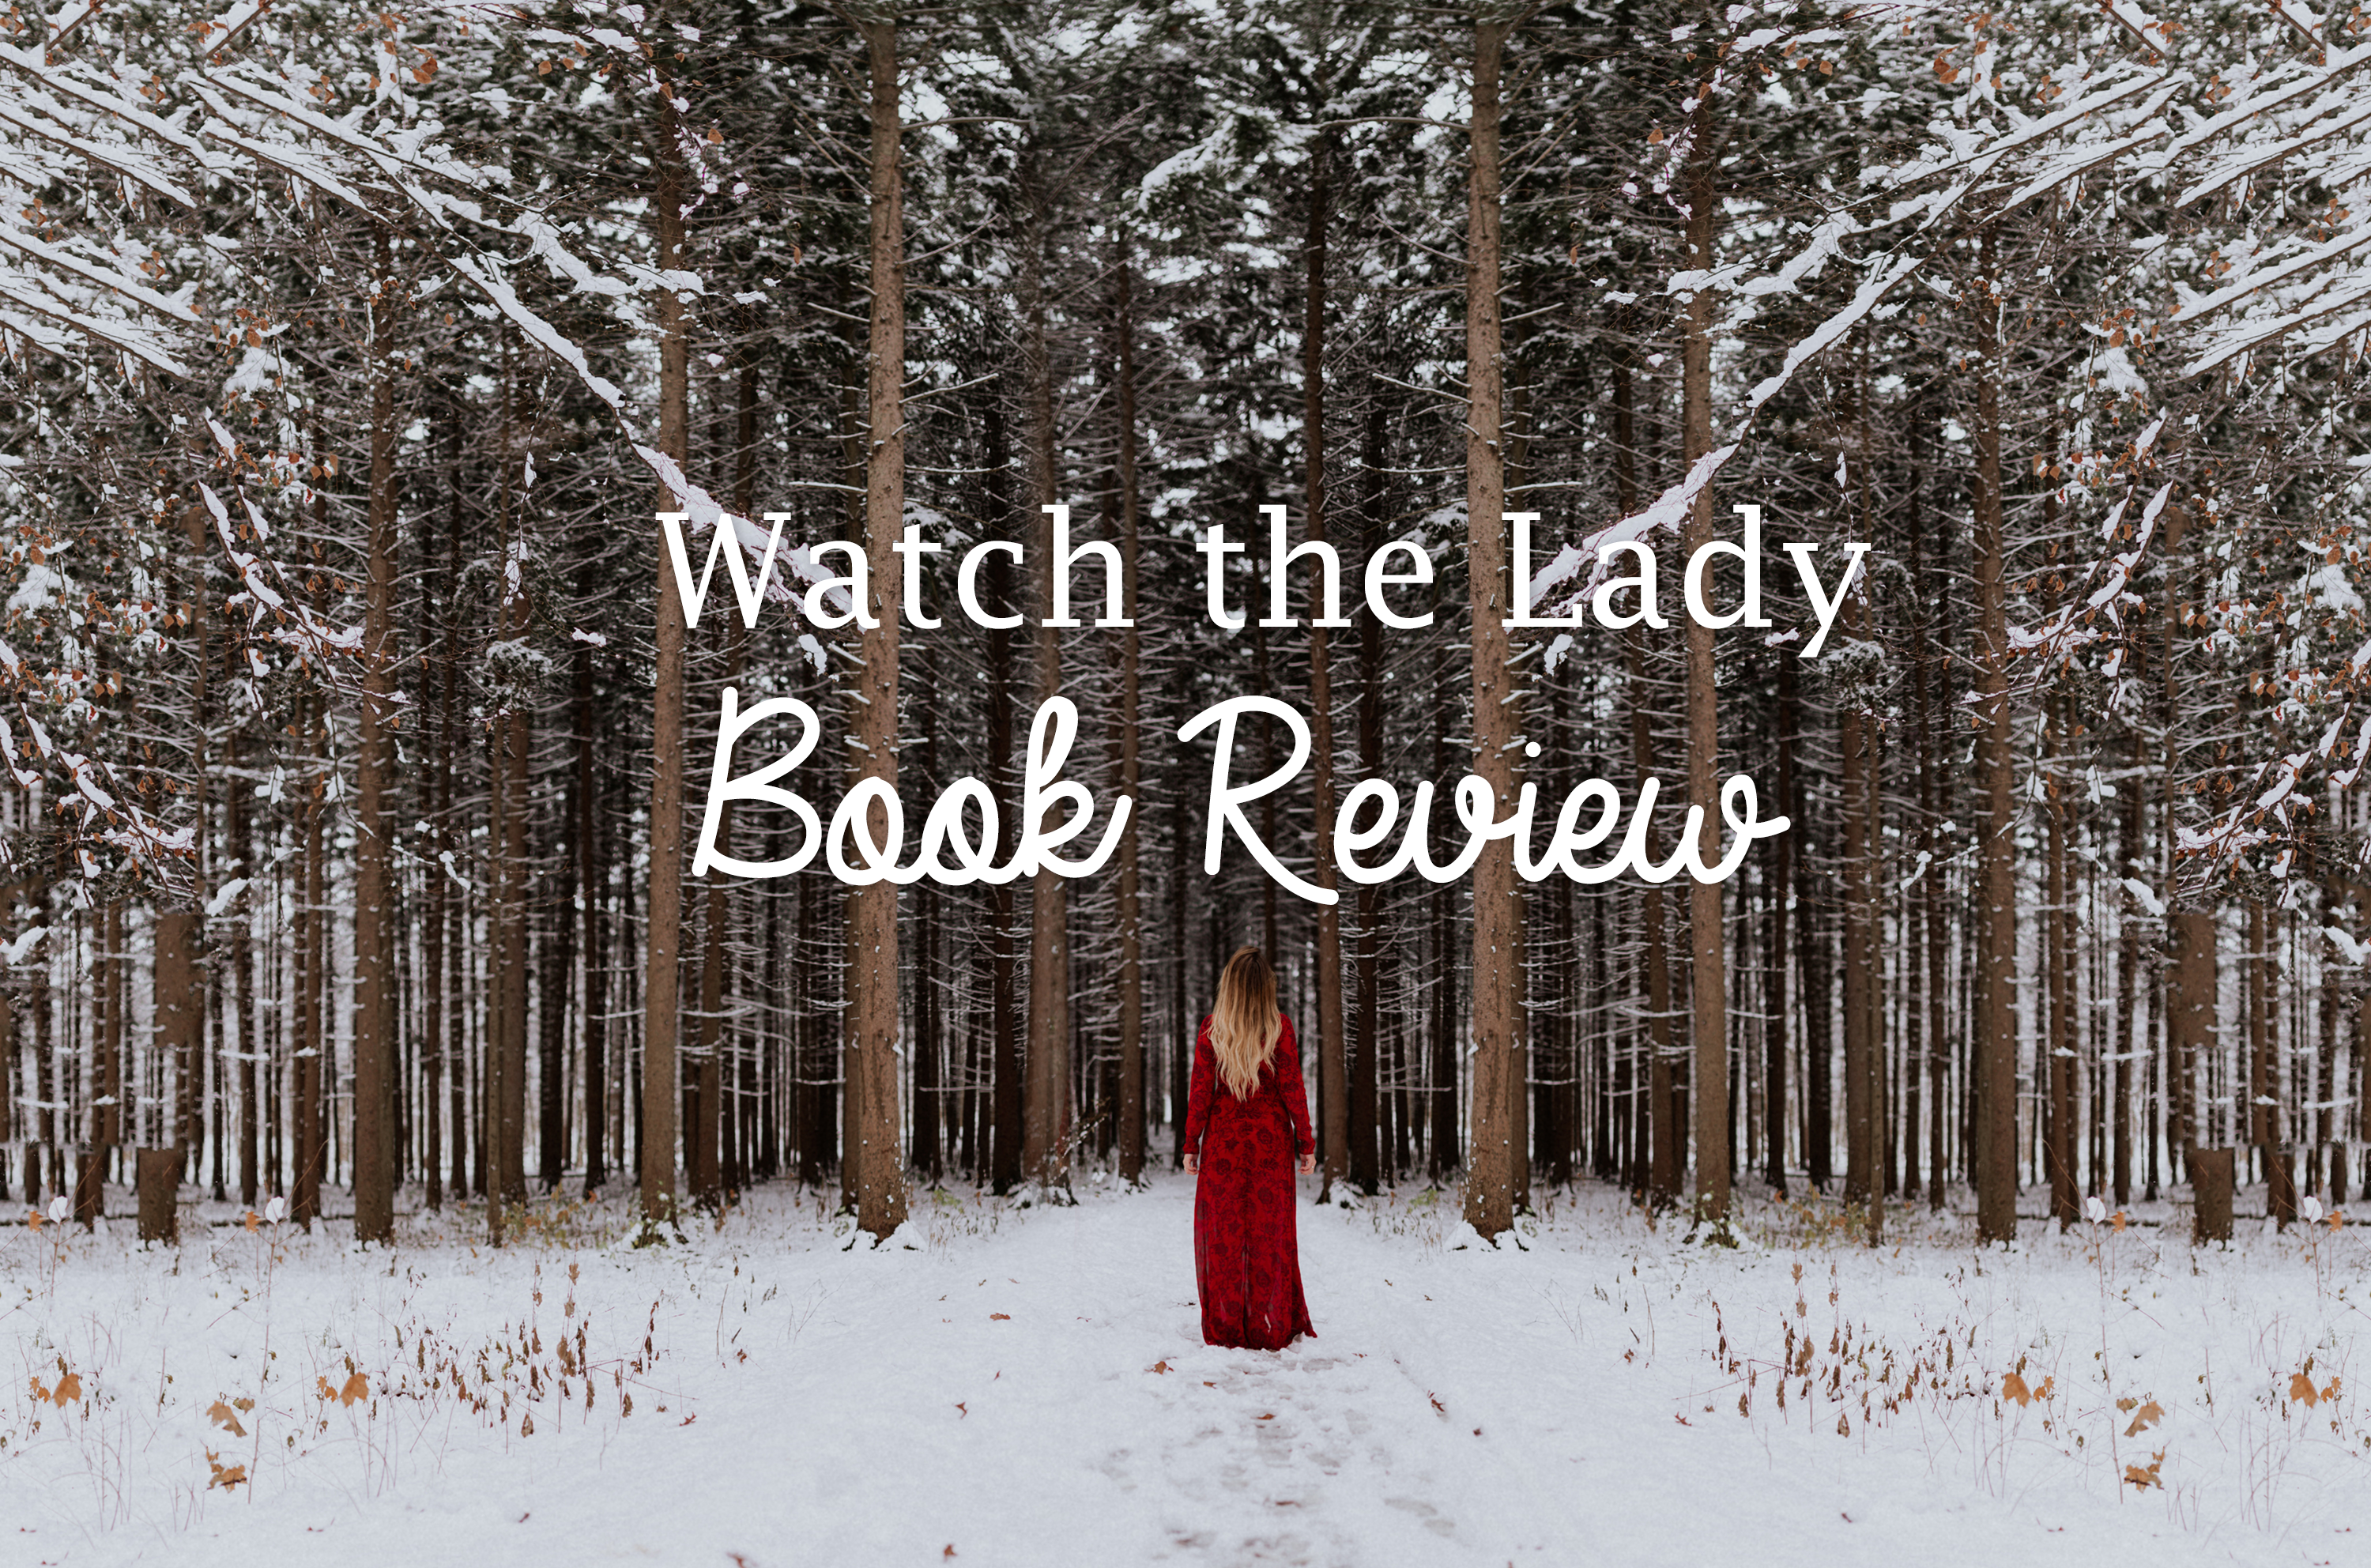 Book Review: Watch the Lady